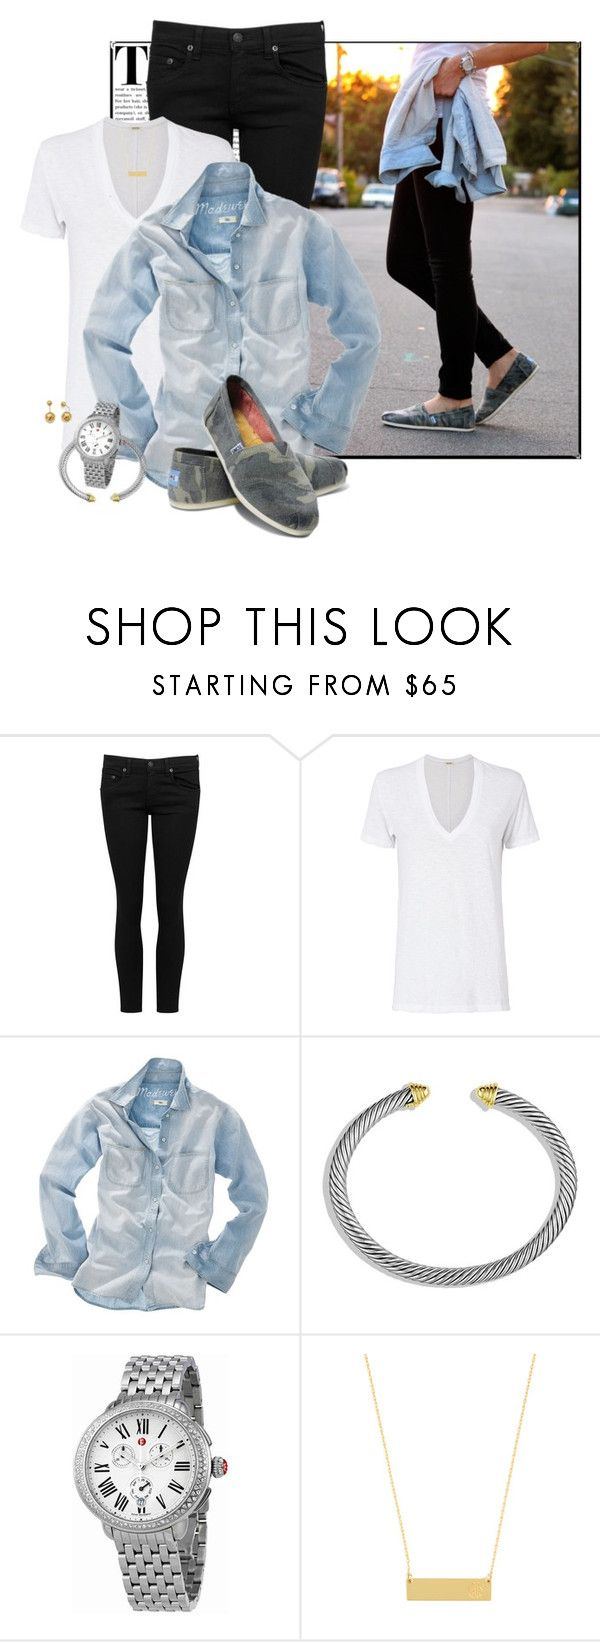 """""""Camo Toms"""" by fashionista88 ❤ liked on Polyvore featuring rag & bone/JEAN, Monrow, Madewell, David Yurman, Michele, BaubleBar, Allurez, BloggerStyle, SimpleStyle and toms"""